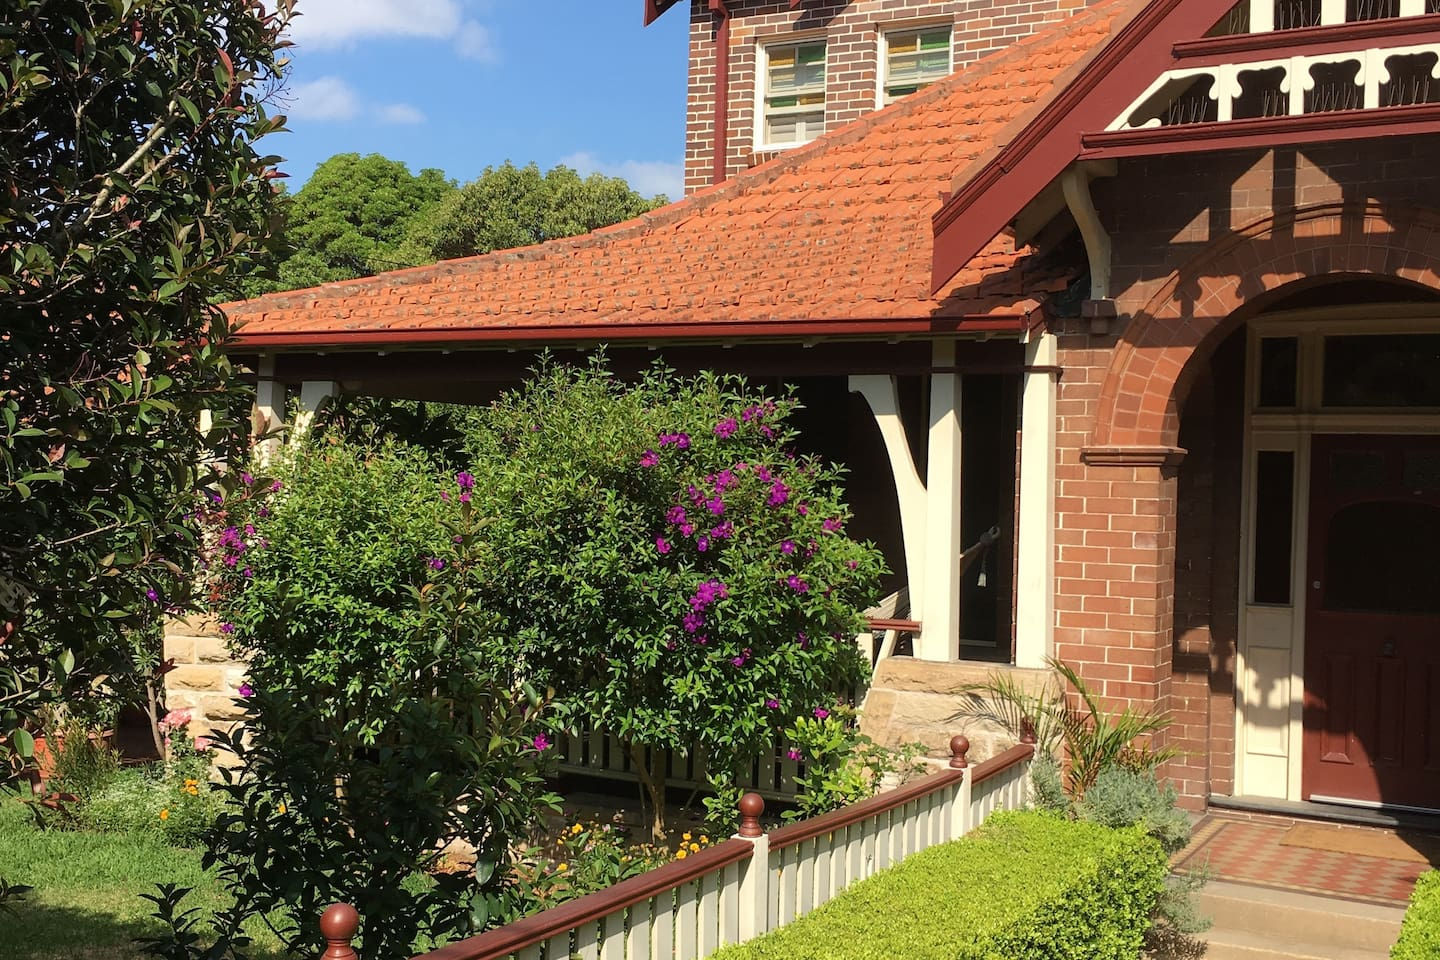 Federation period home with lovely garden